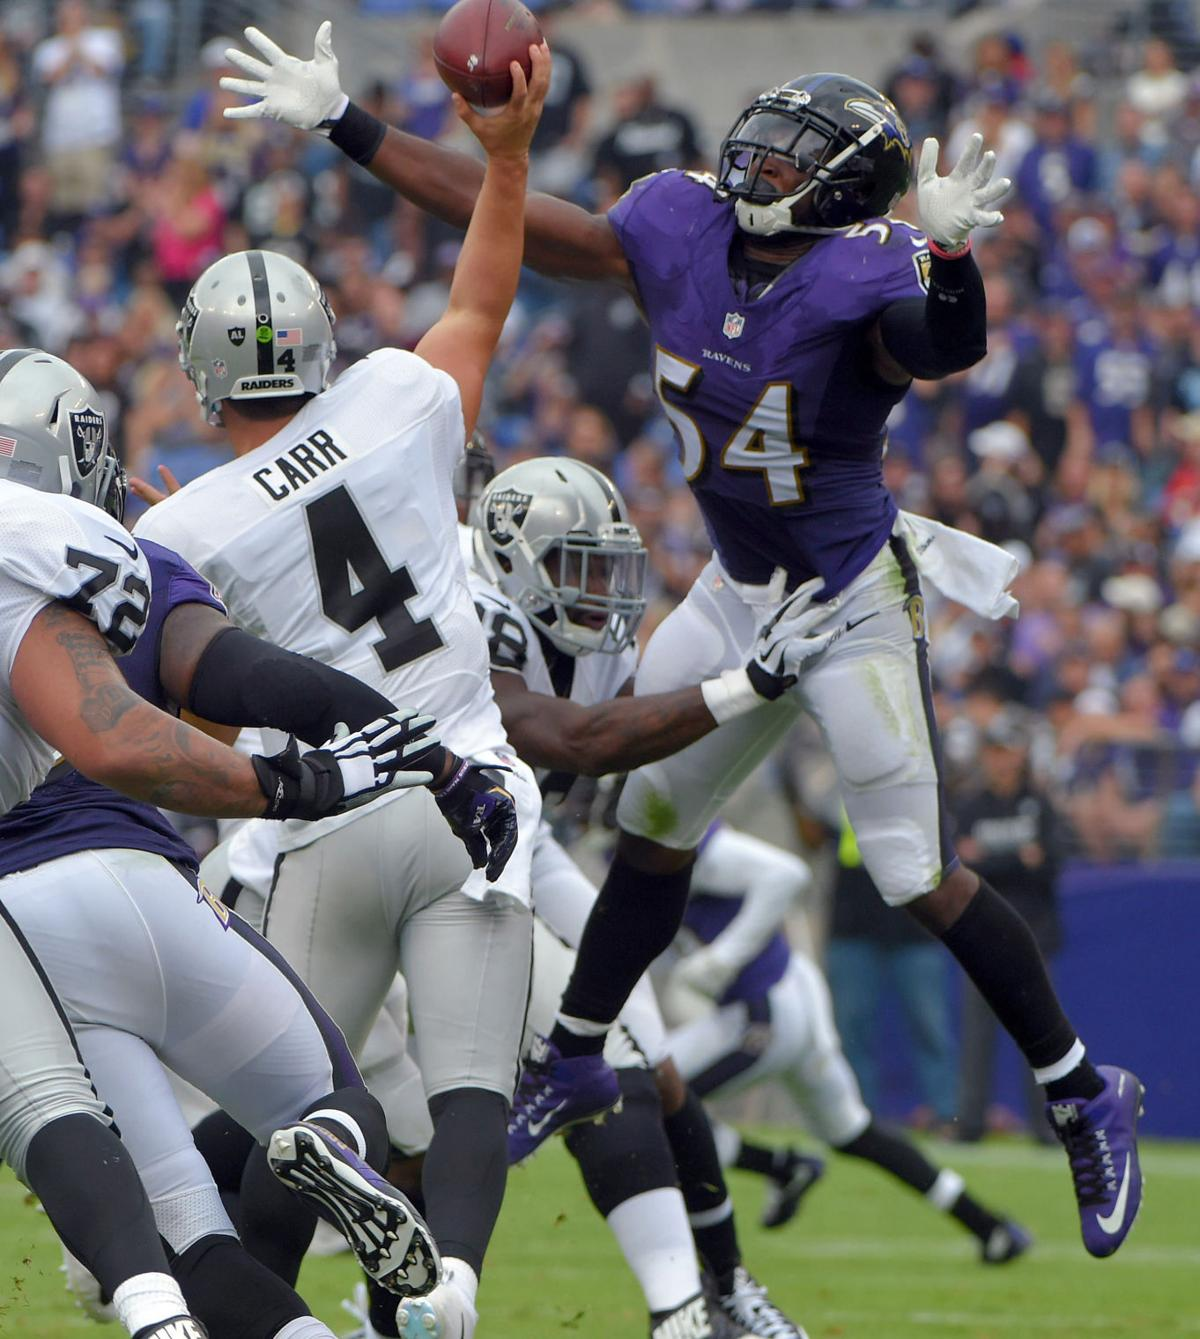 With Derek Carr out Ravens prepare for Raiders backup QB EJ